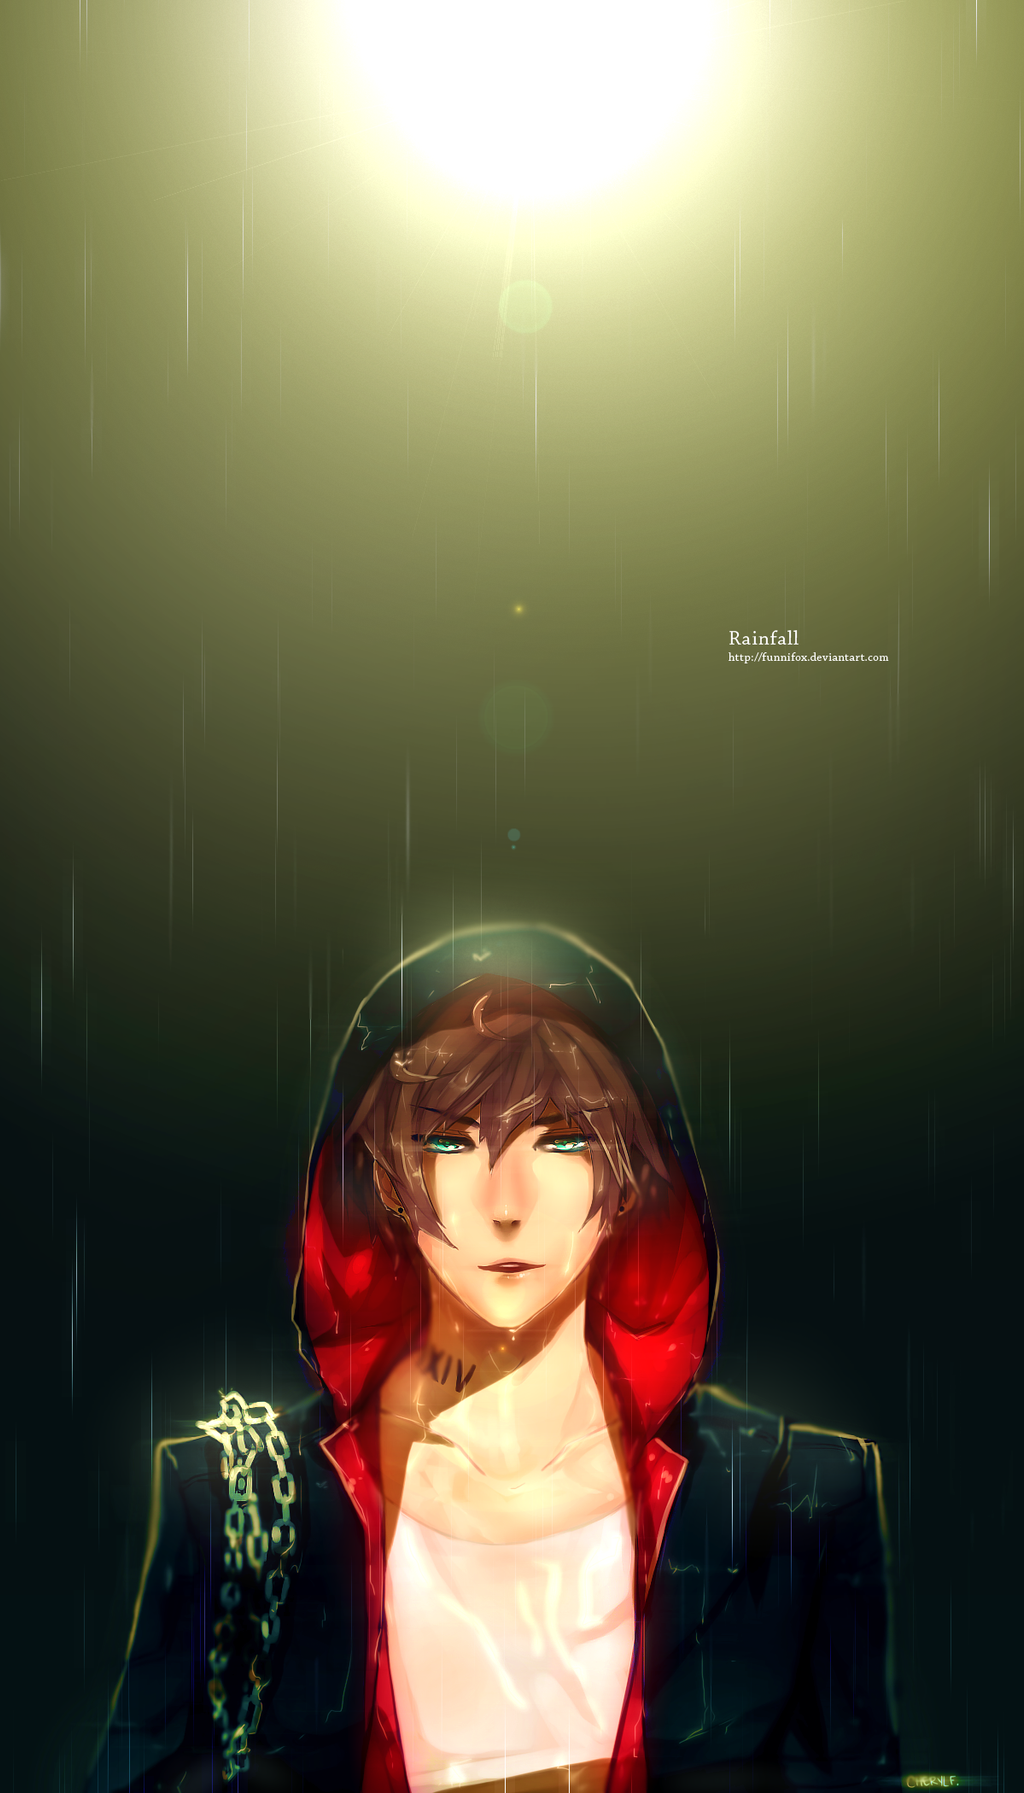 Rainfall by Ahniki